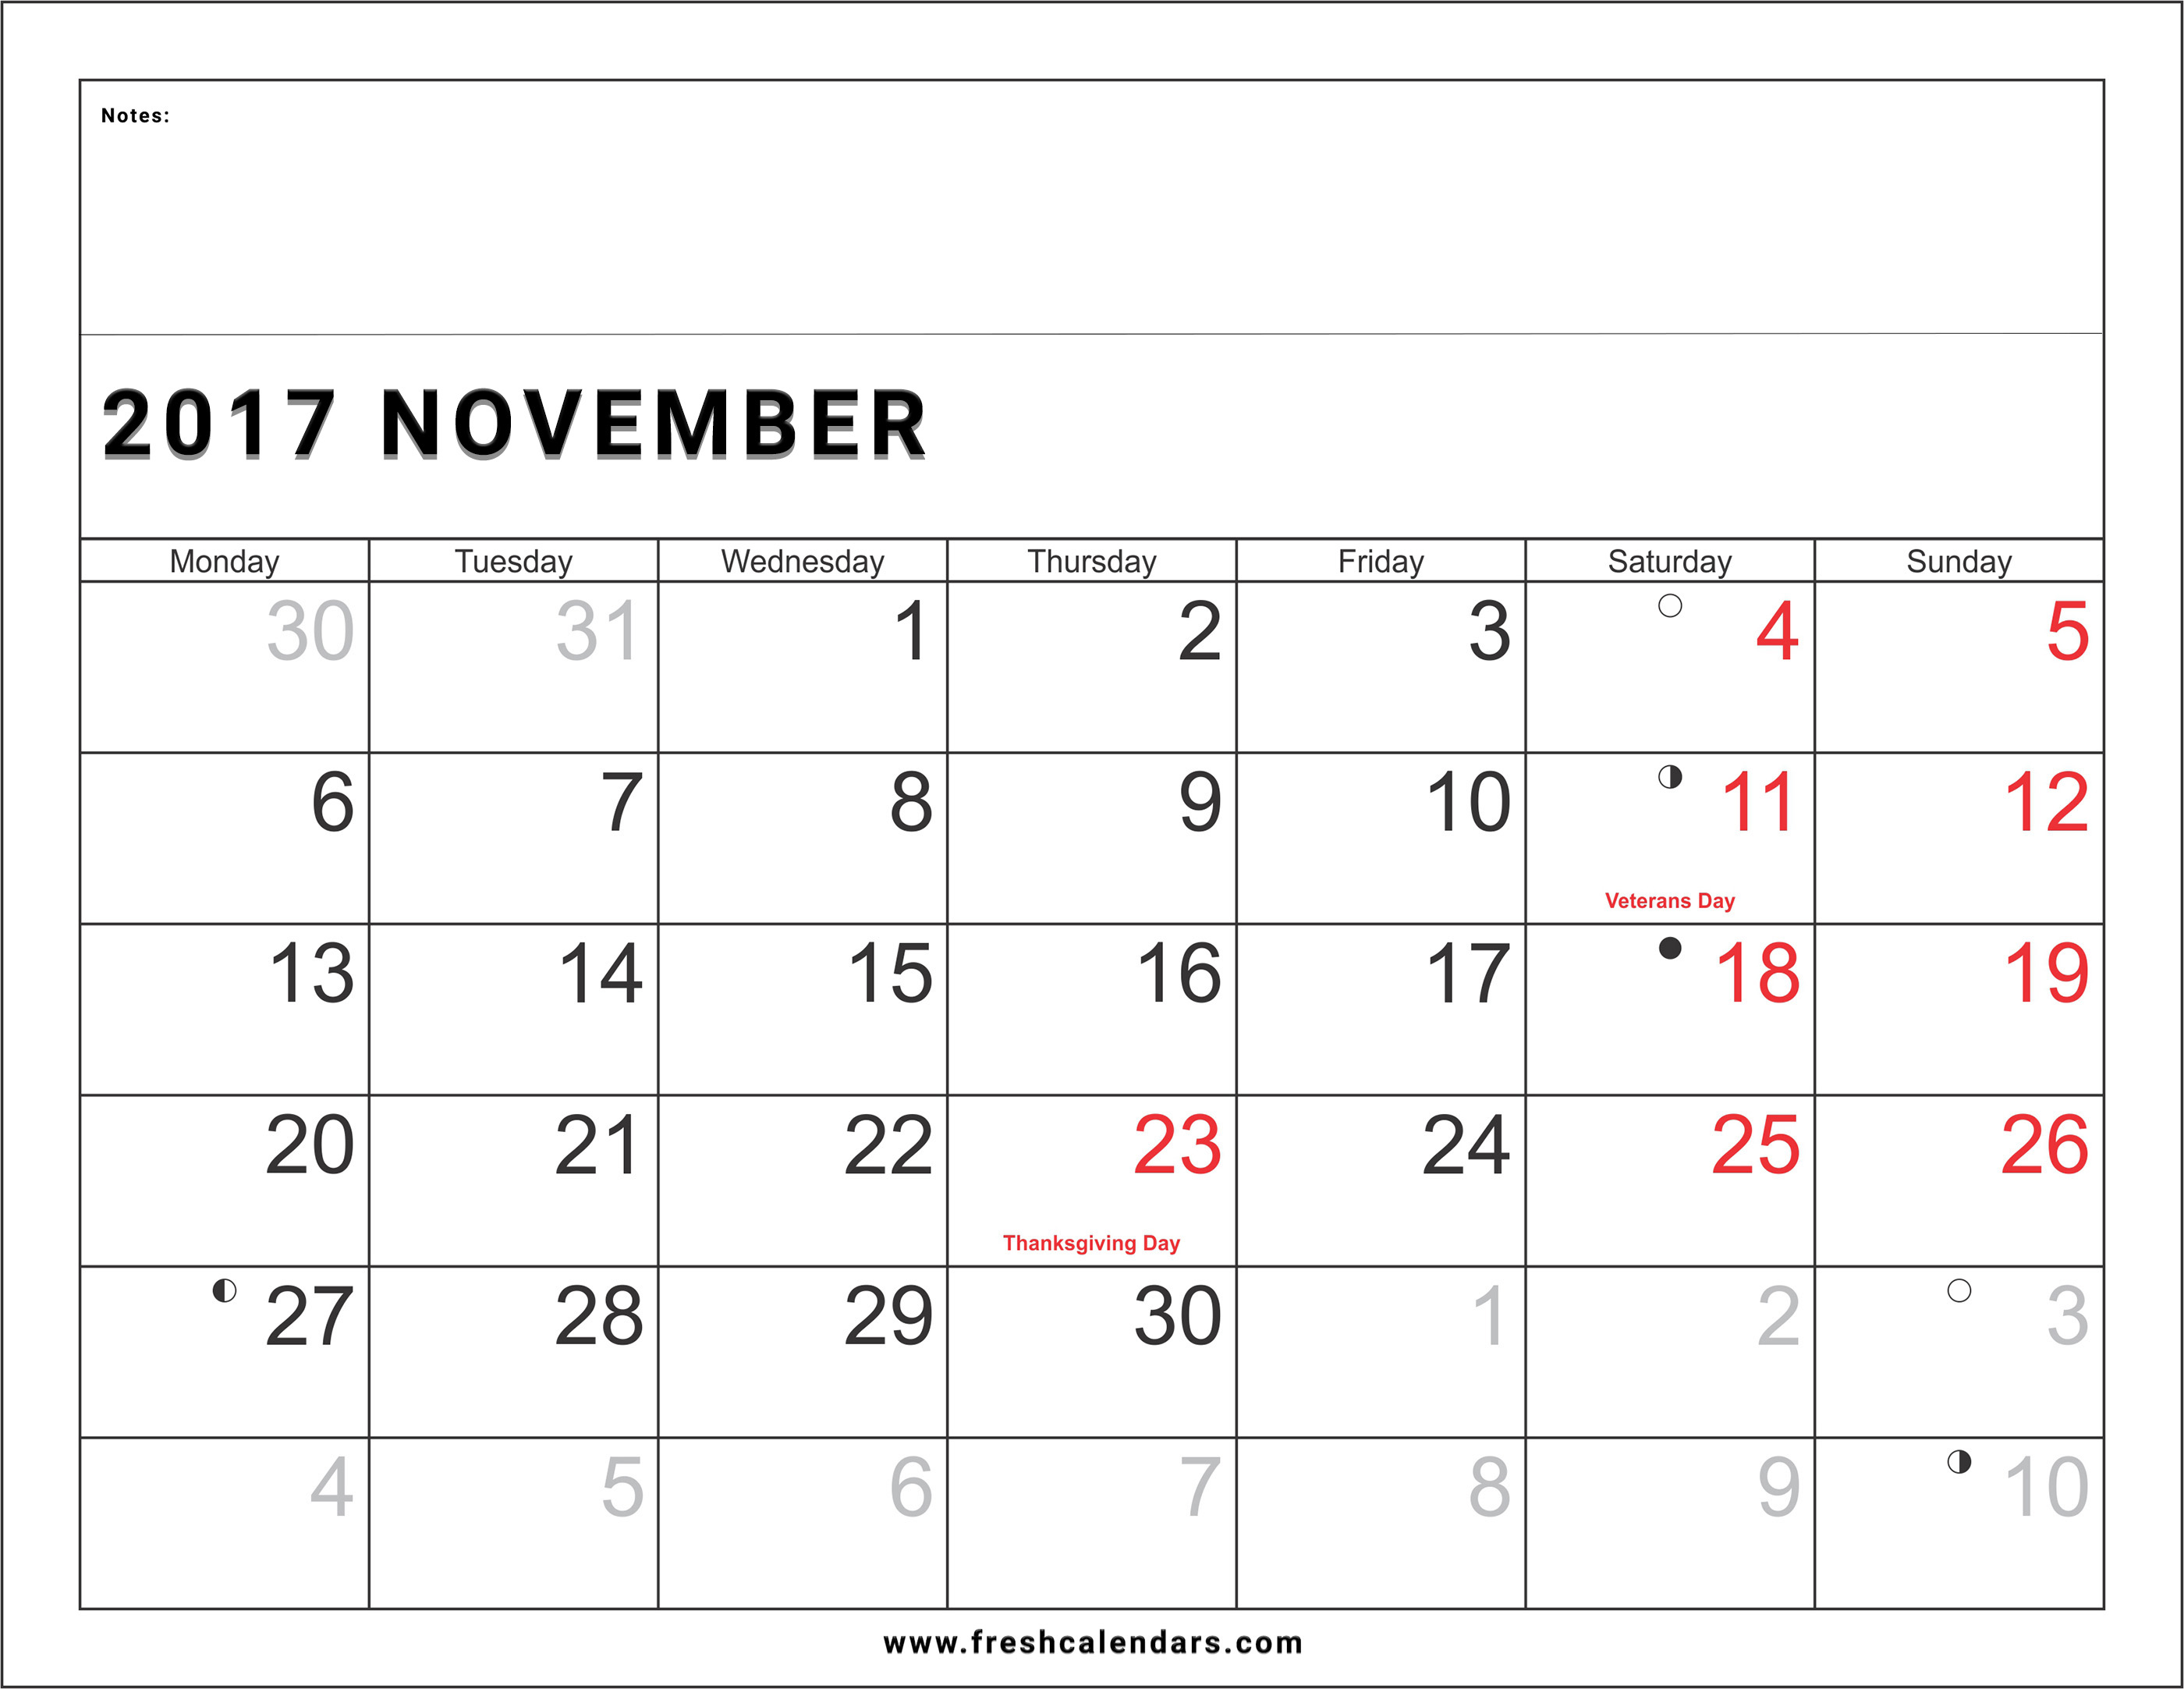 image regarding Printable Nov. Calendar named November 2017 Calendar Printable Templates